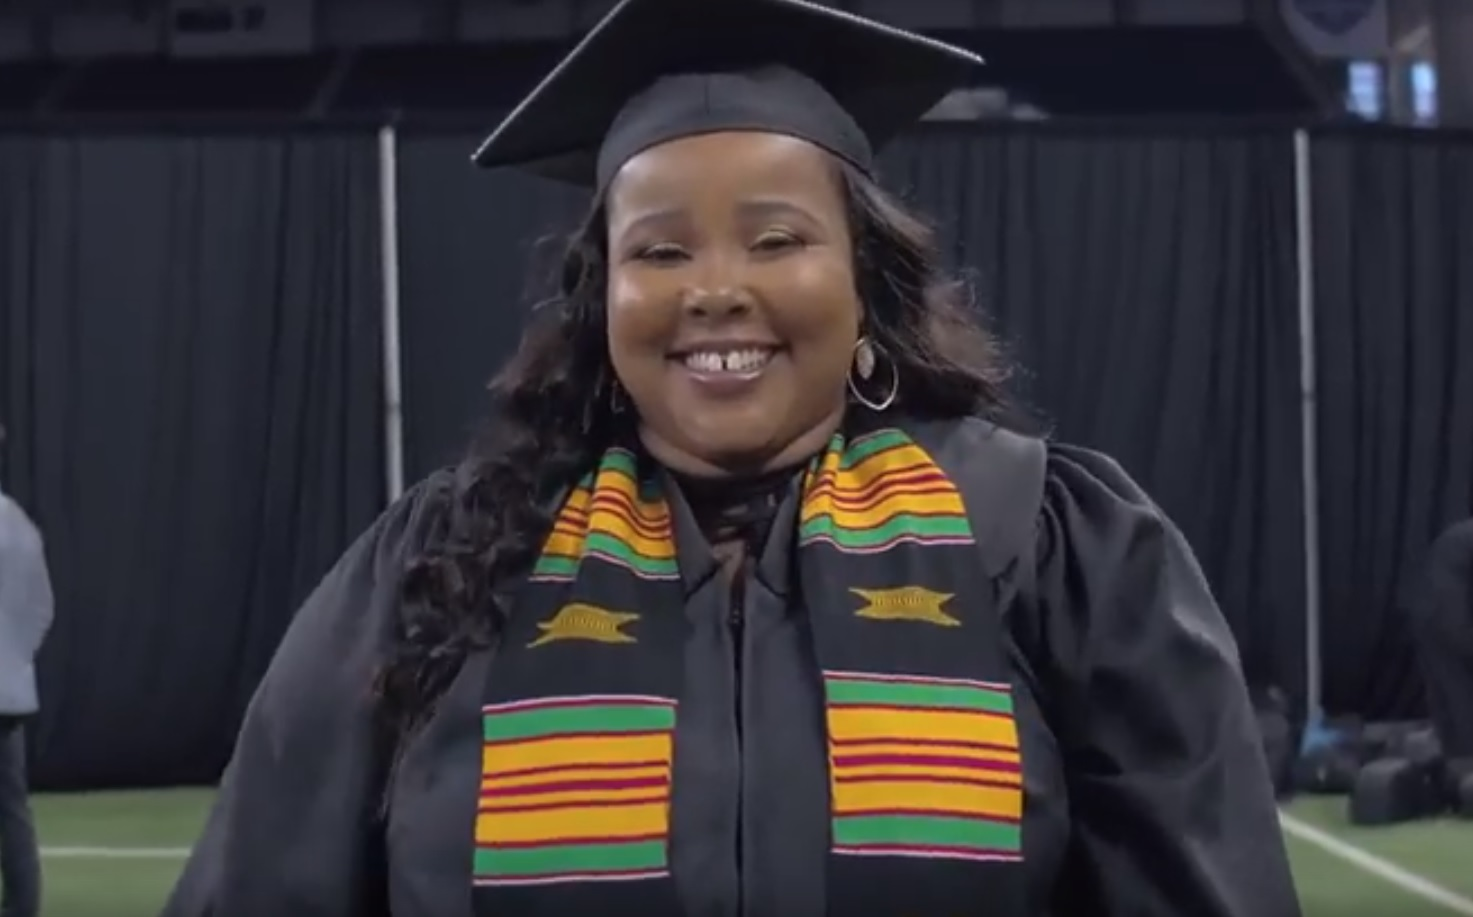 2018 Commencement: Here come the Warriors